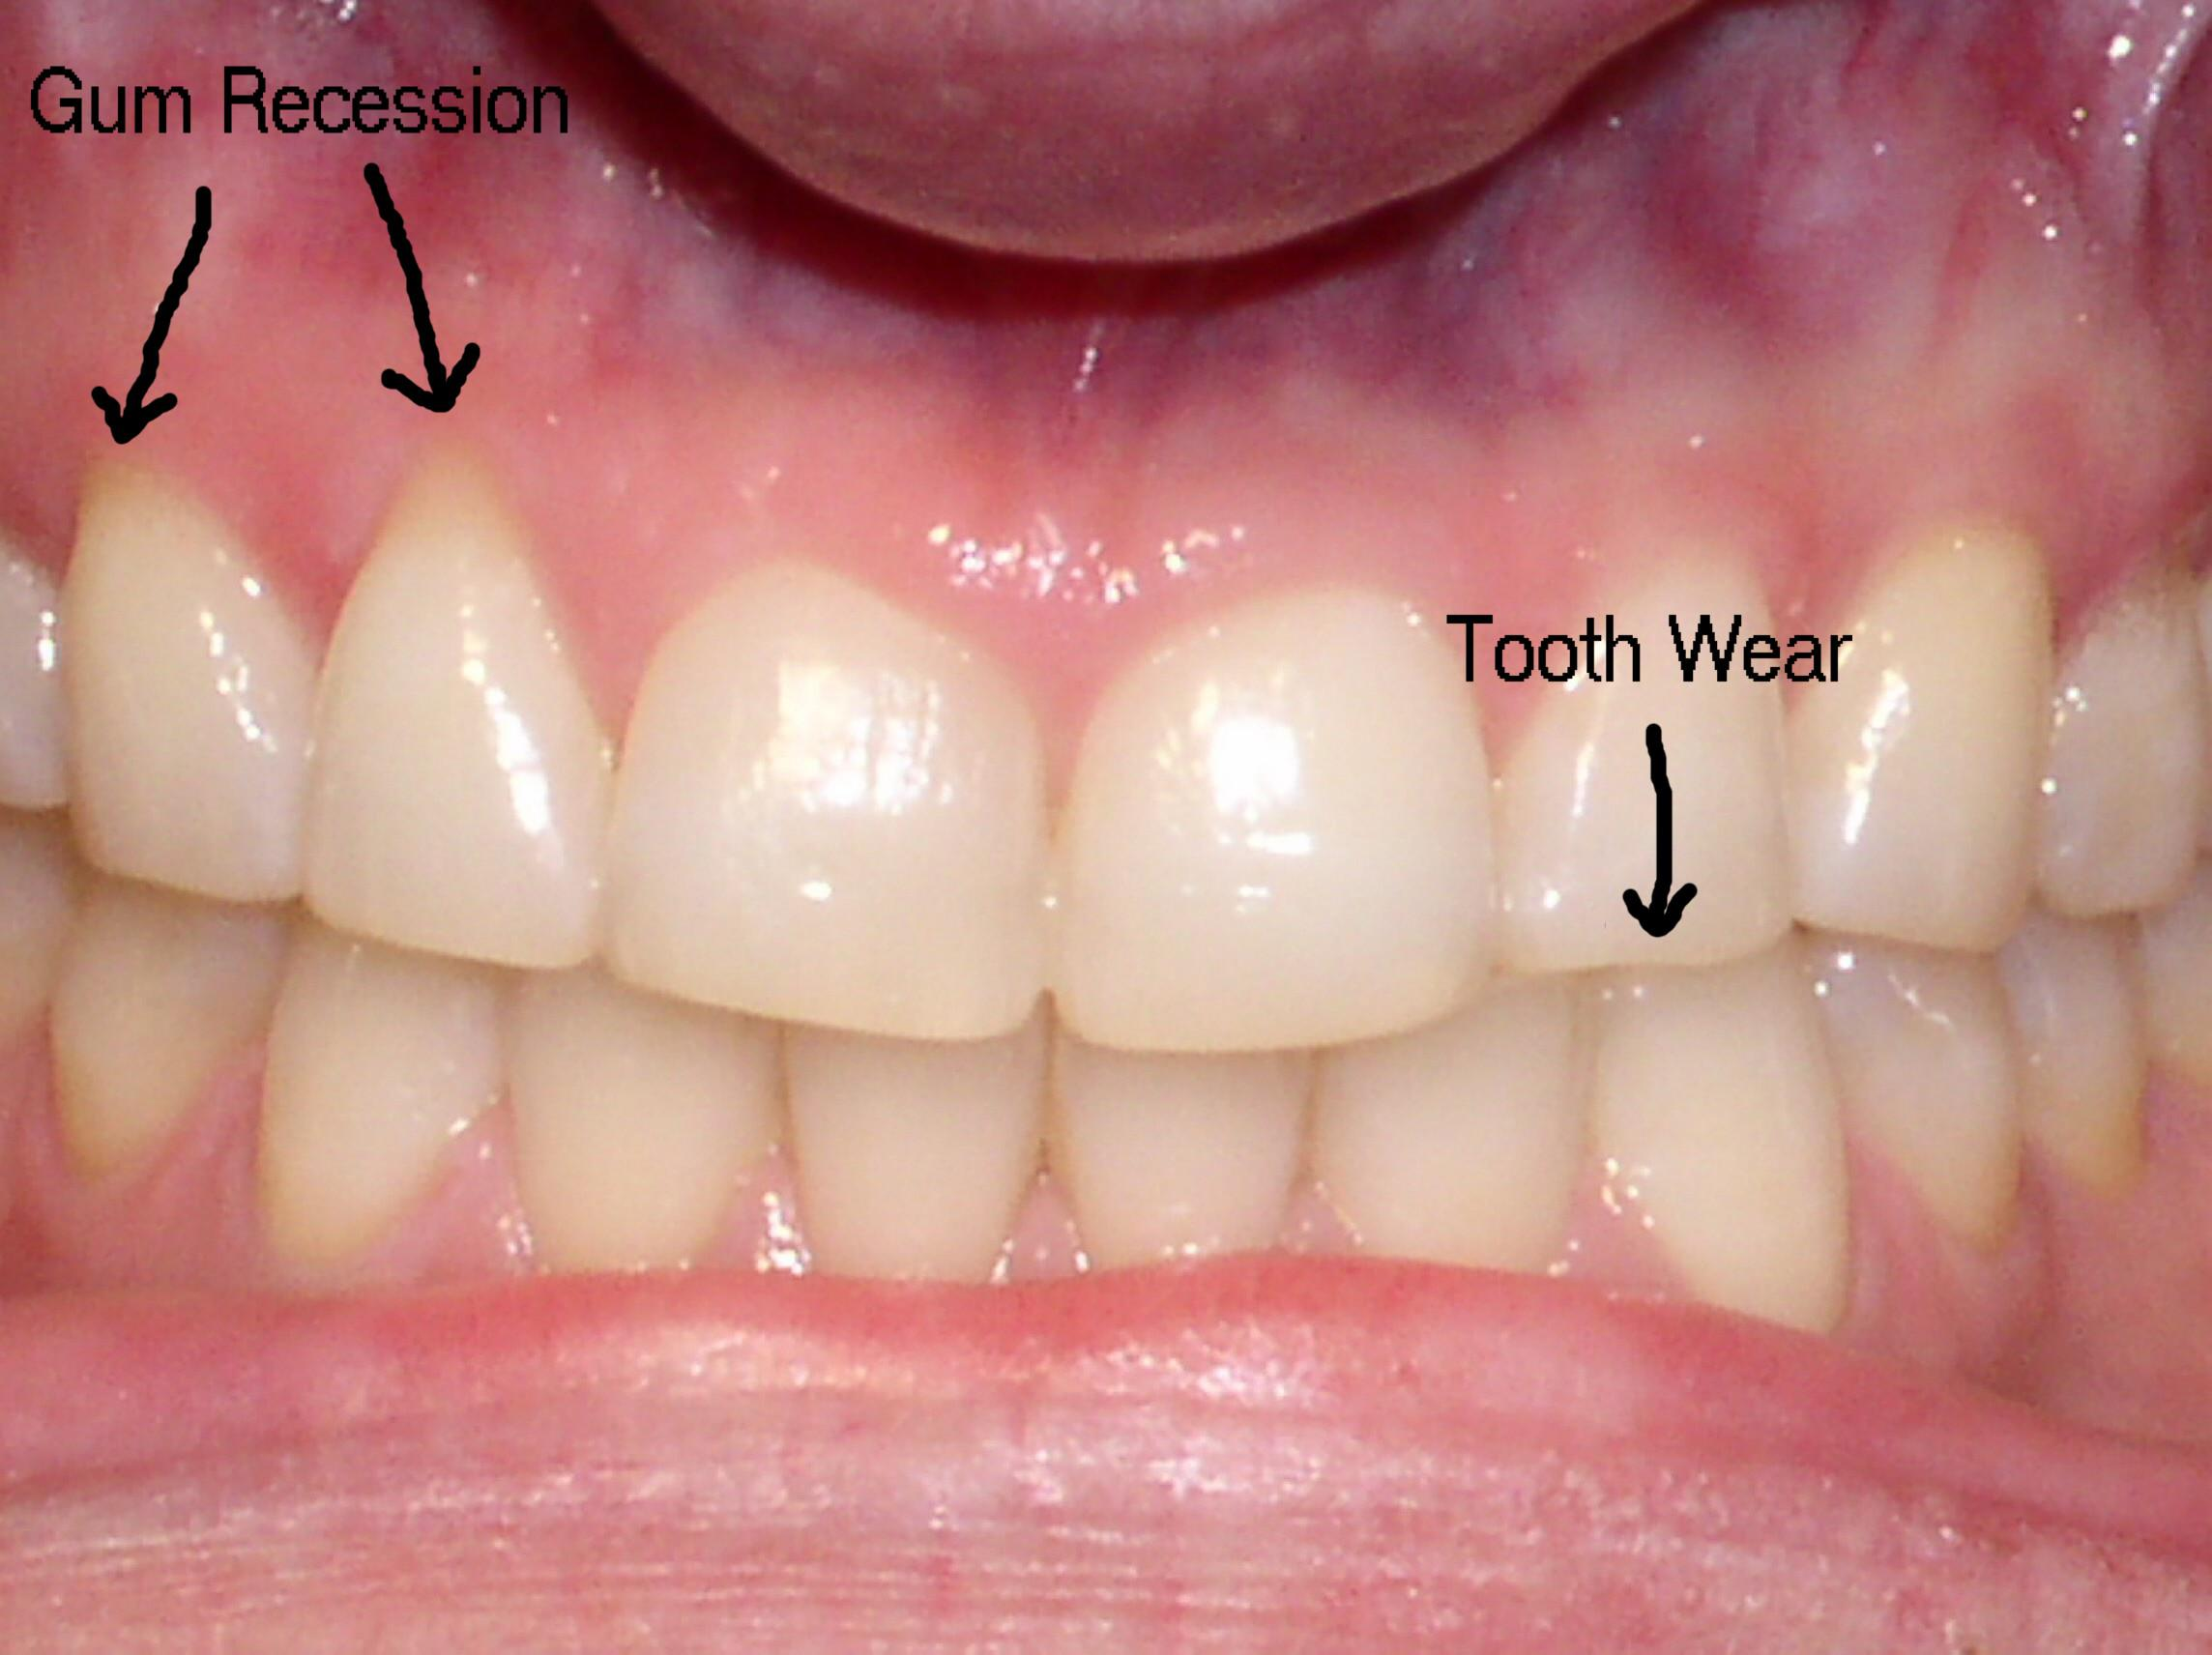 Photo of teeth and gums showing gum recession and tooth wear.